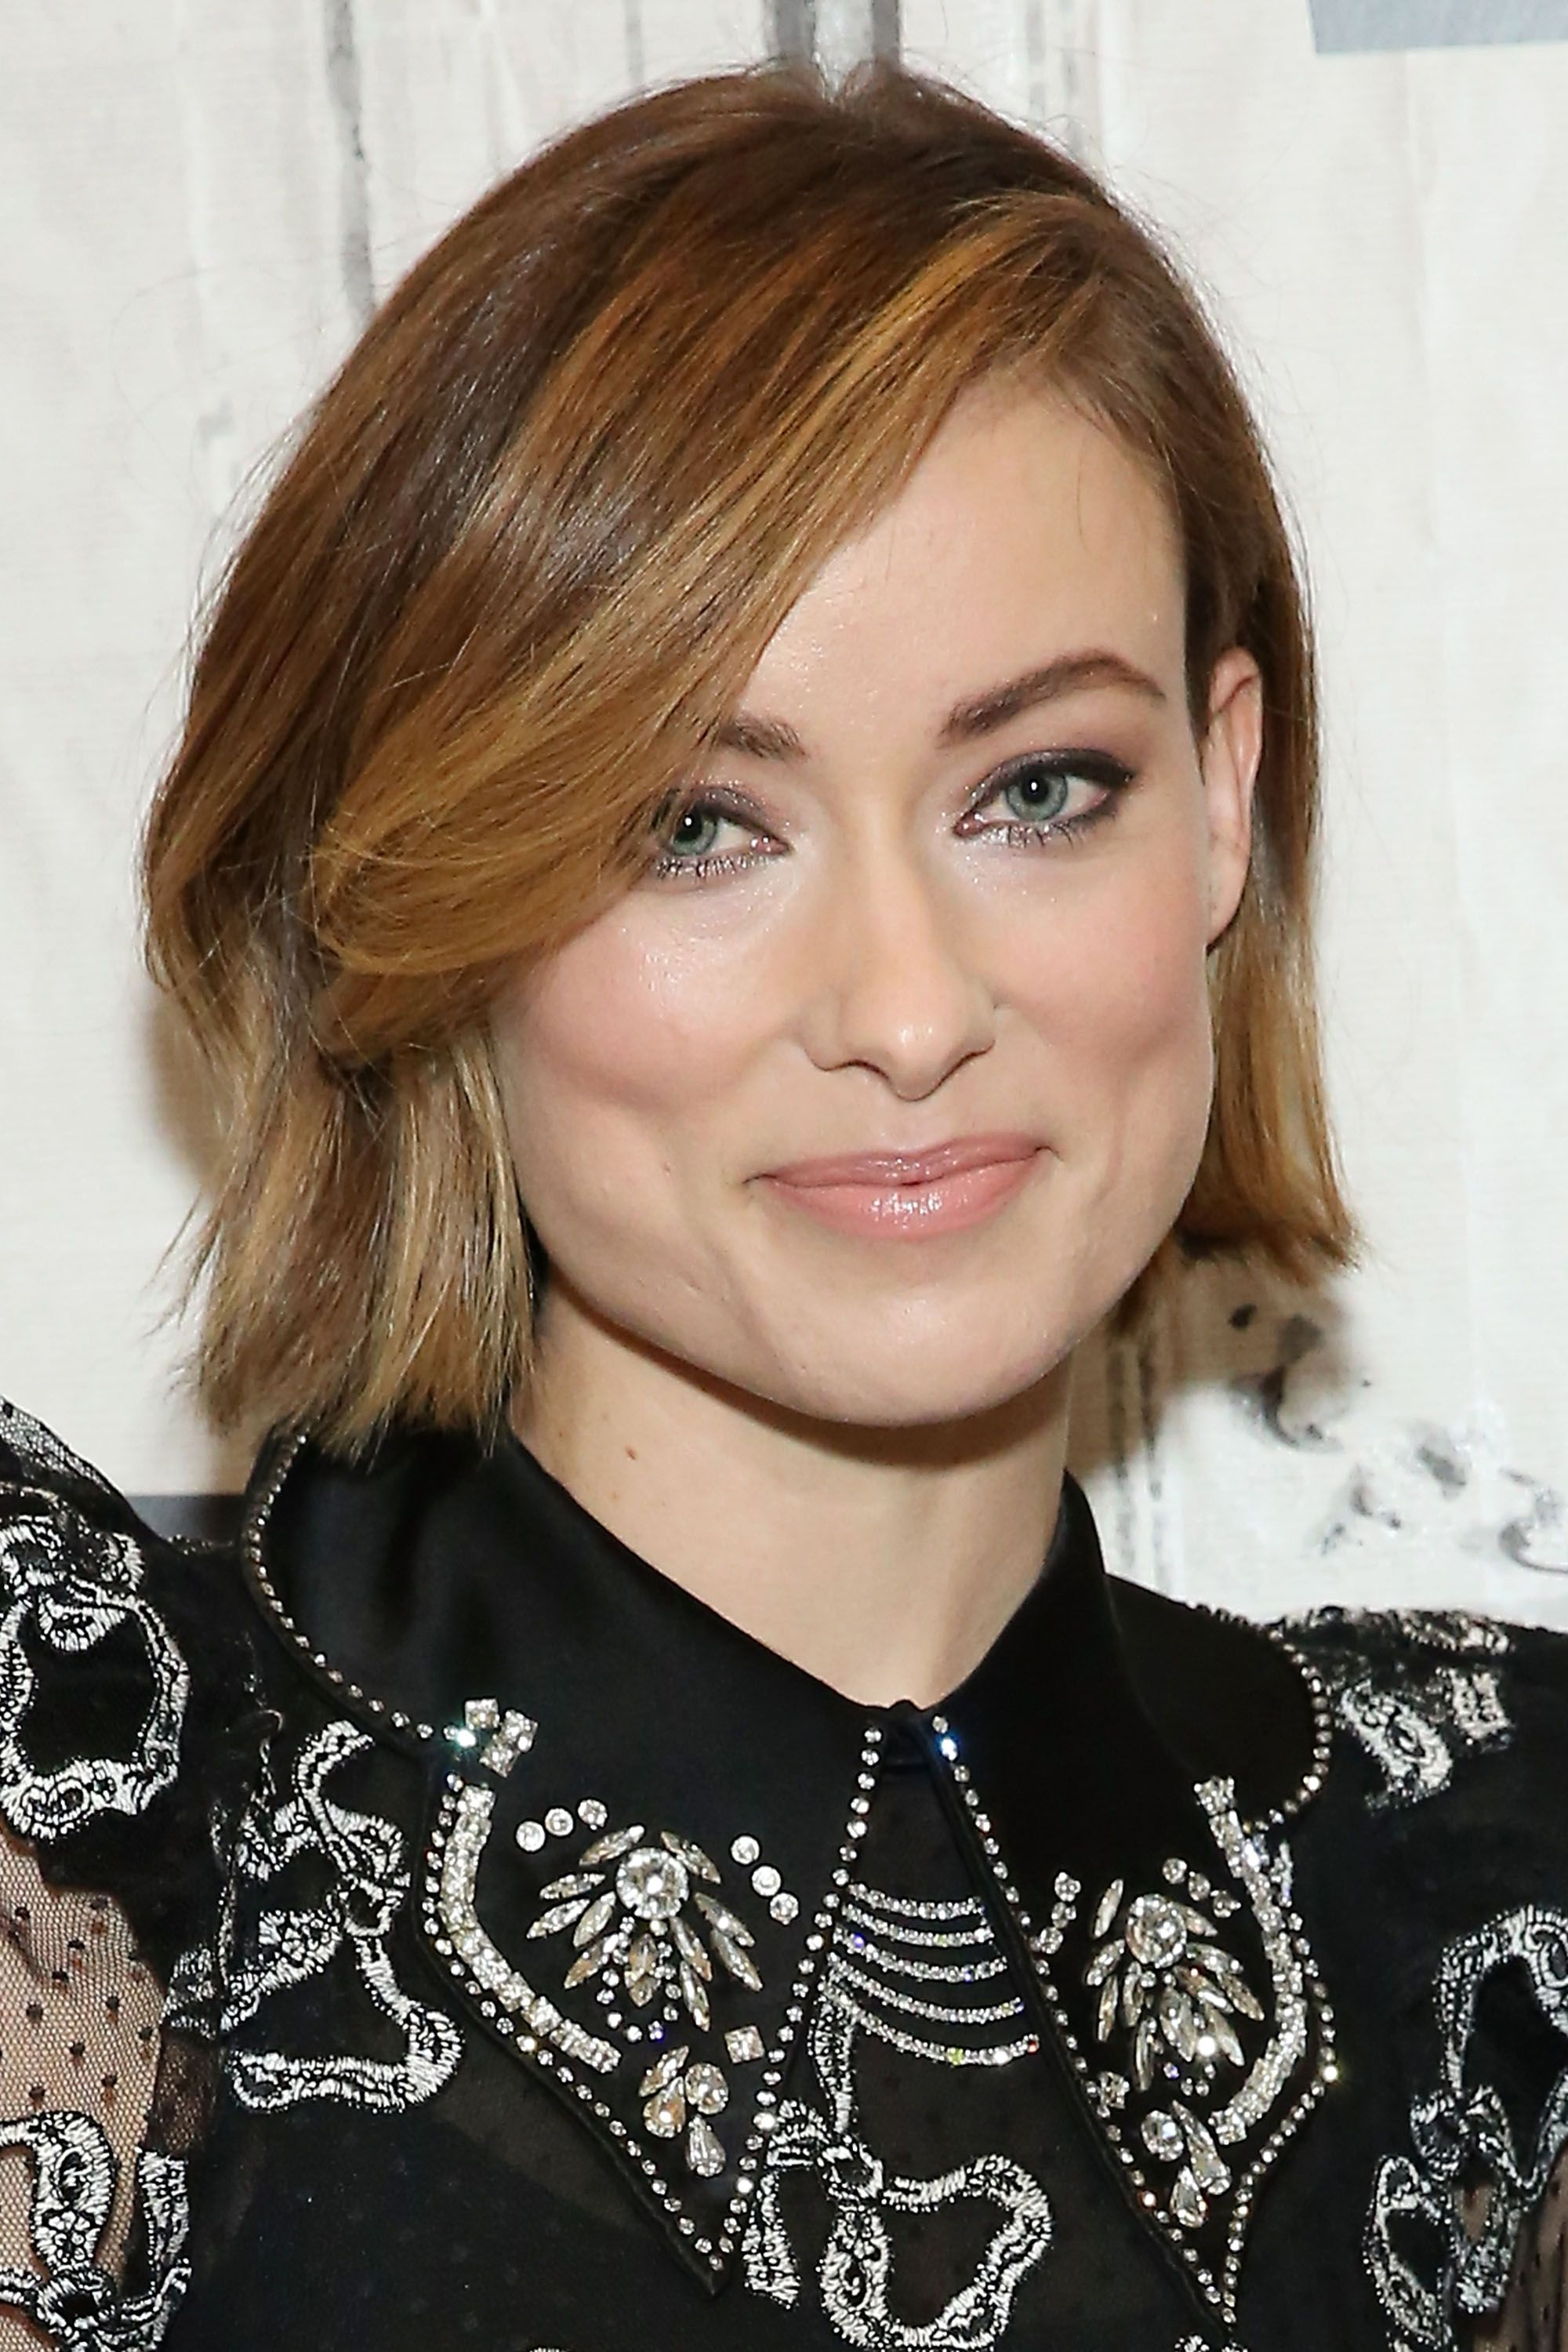 26 Best Hairstyles for Square Faces in 2019 recommend